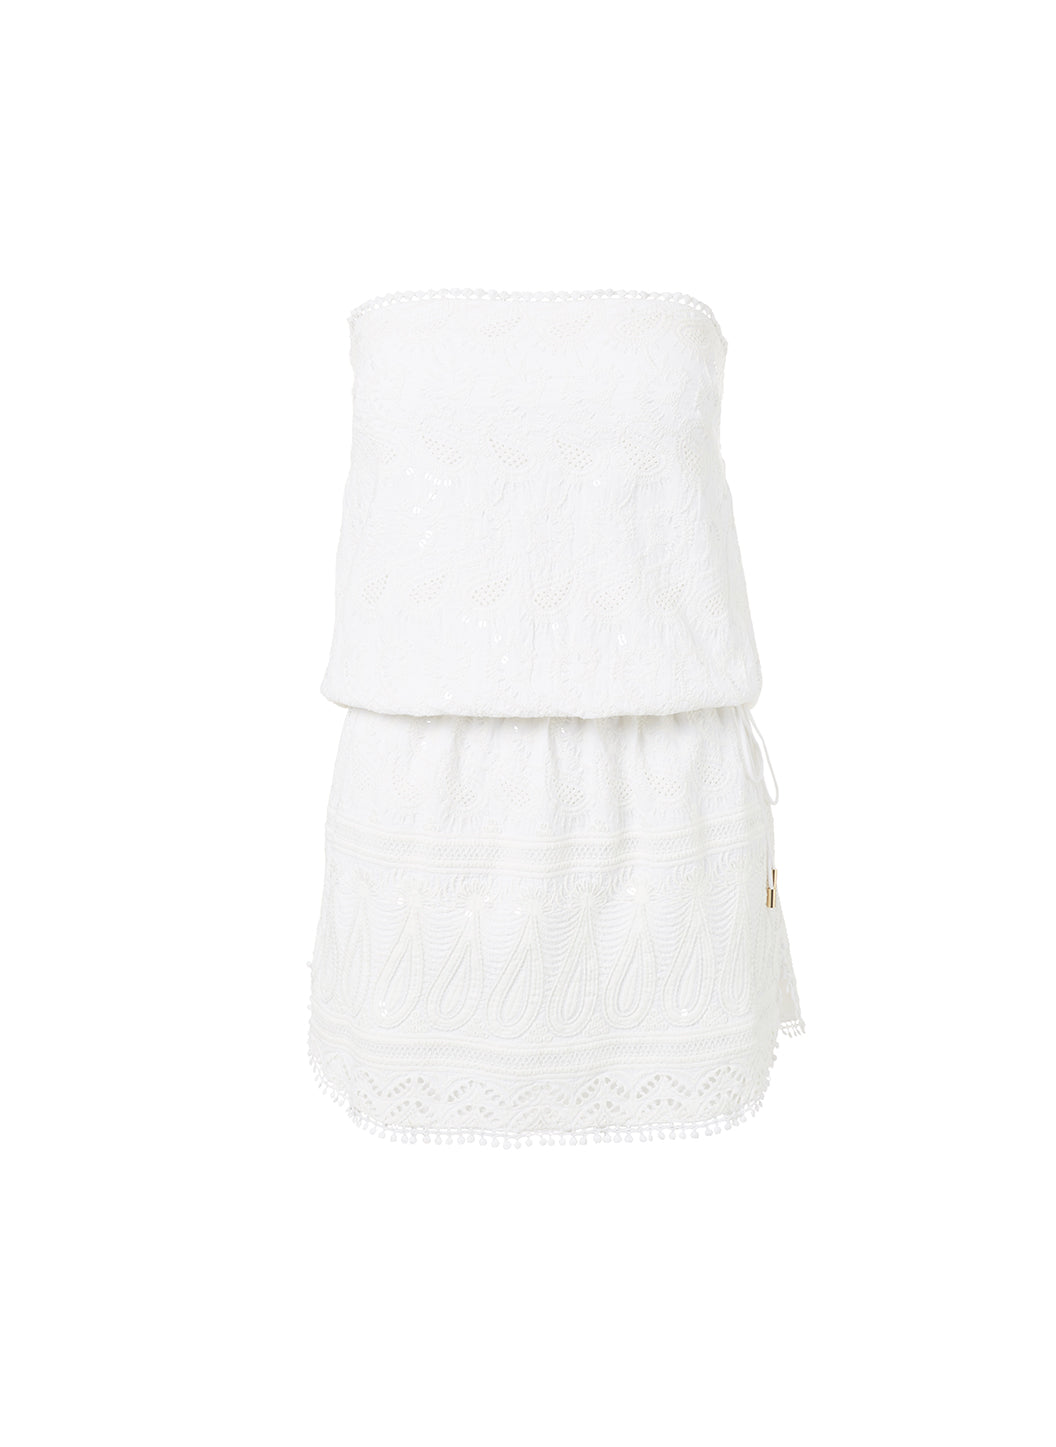 Tia White Bandeau Embroidered Short Beach Dress